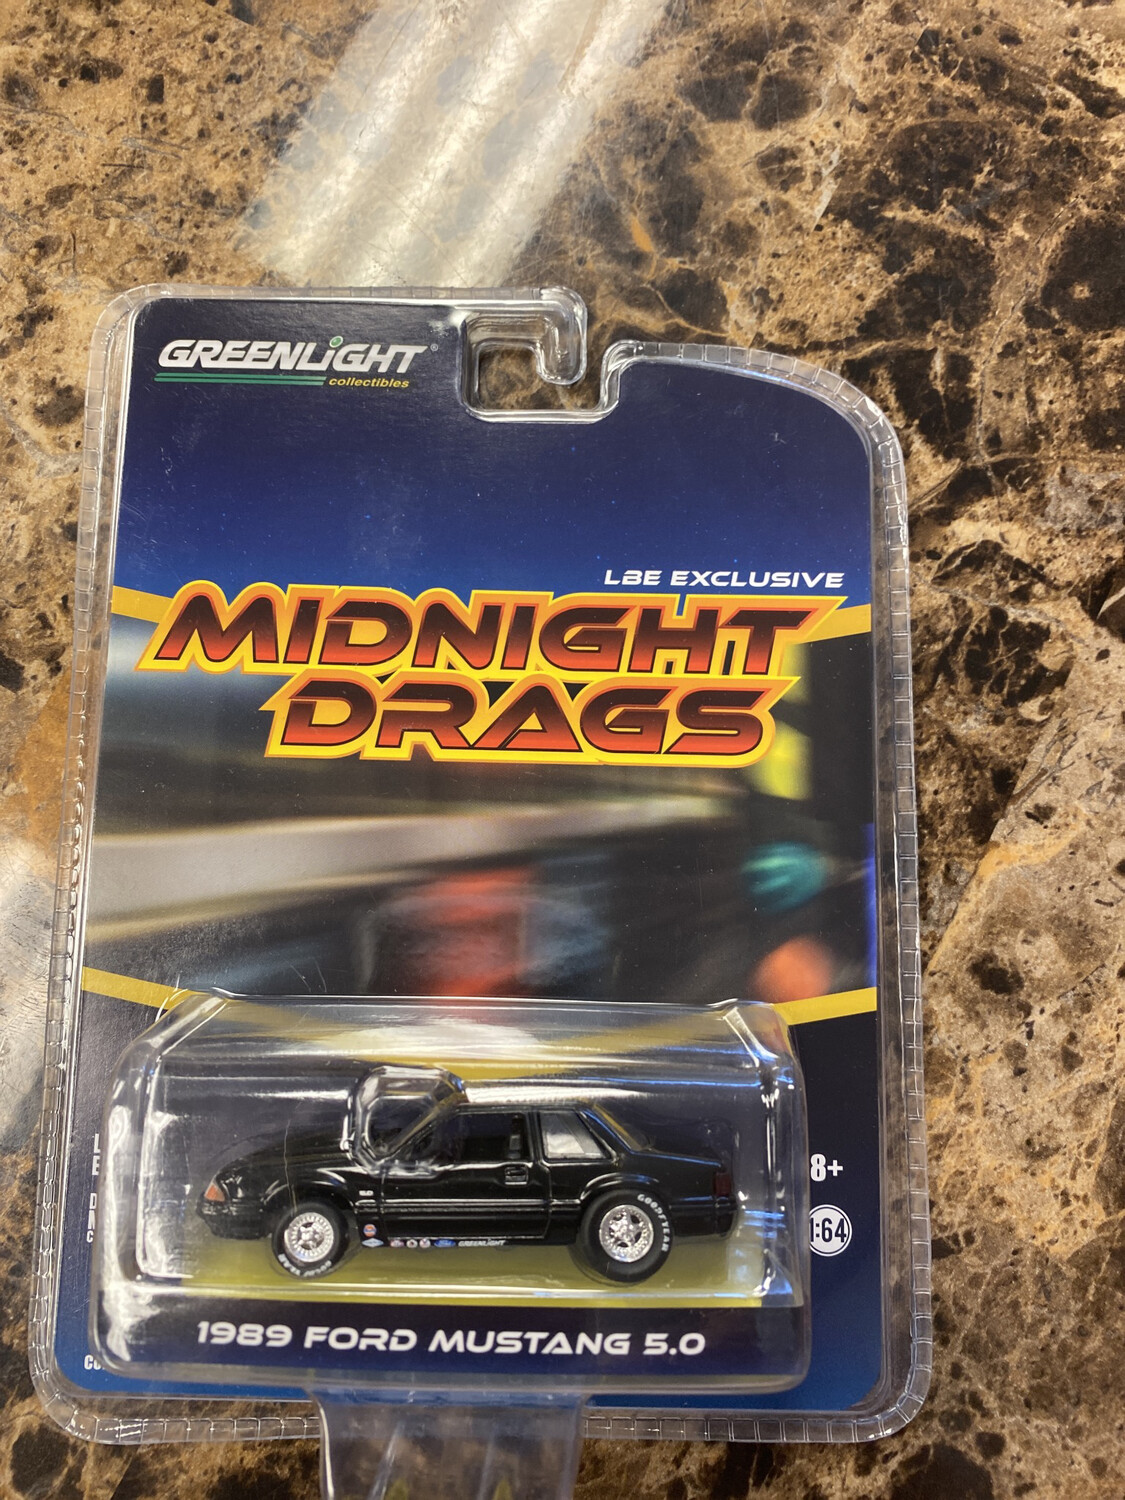 Greenlight-Midnight Drags 1989 Ford Mustang 5.0